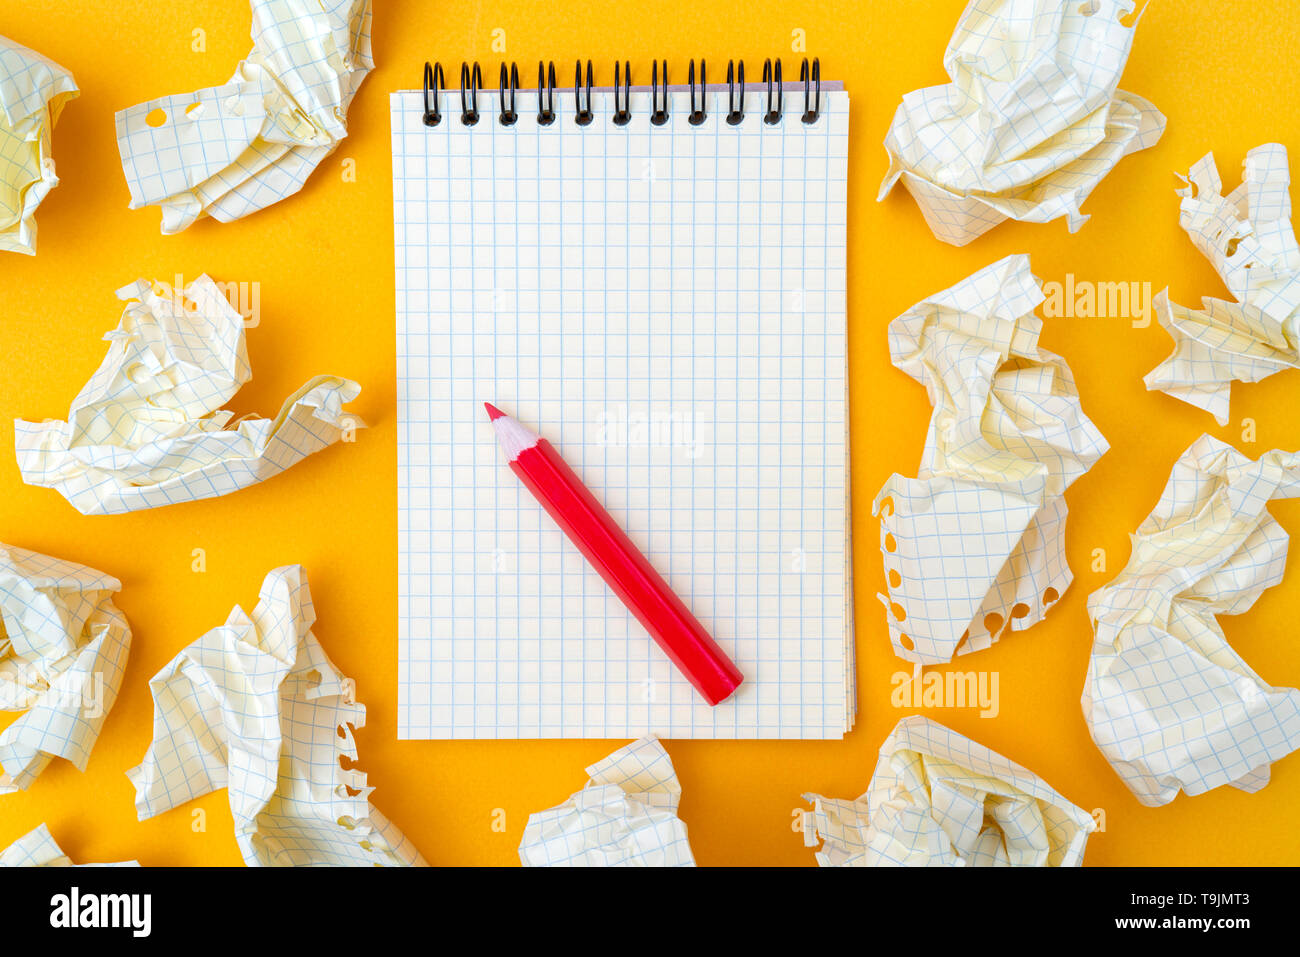 Red pencil and notebook on a yellow background. Crumpled sheets of paper. - Stock Image